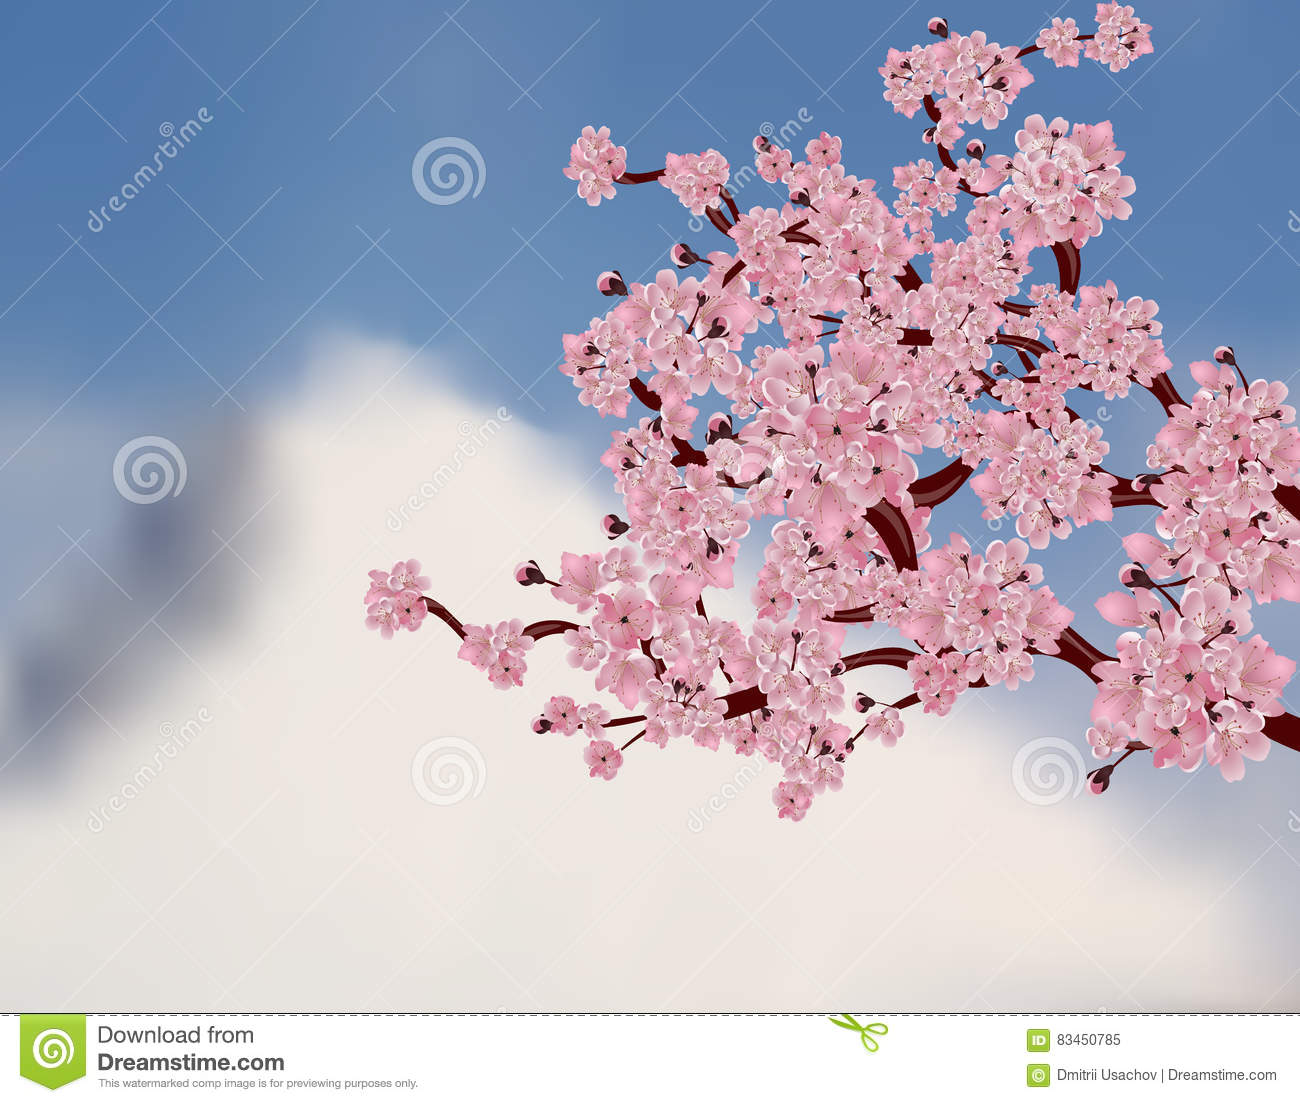 Japanese Cherry Tree Sakura Branch With Pink Flowers On A